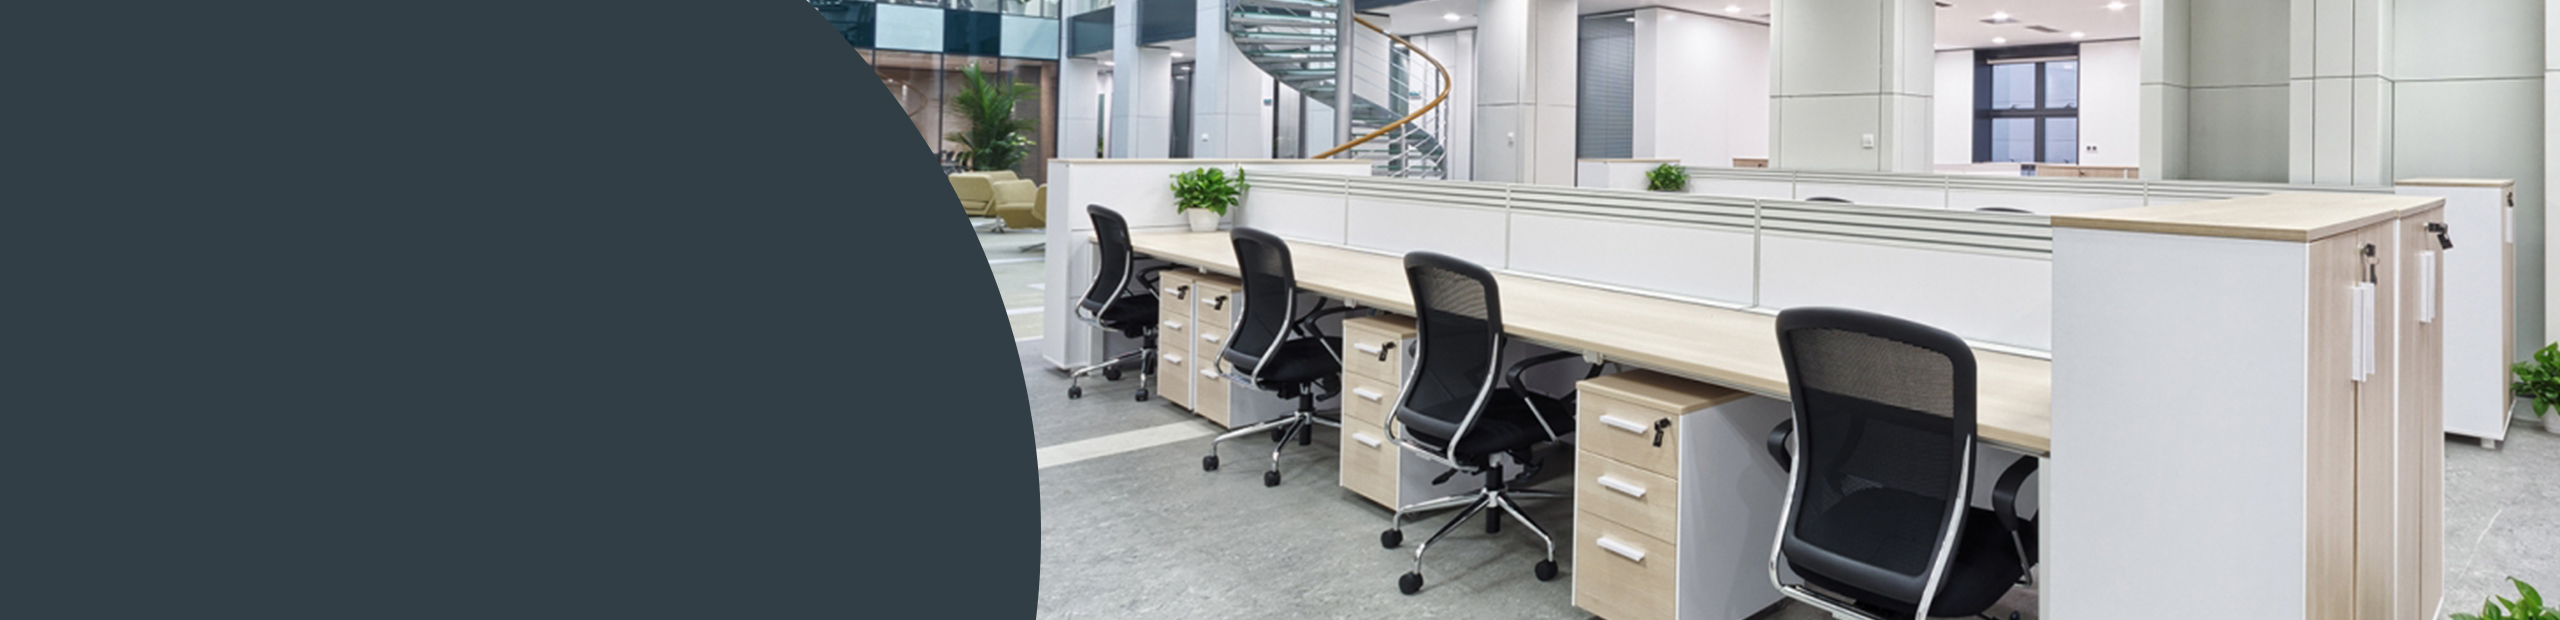 Commercial Cleaning Hounslow